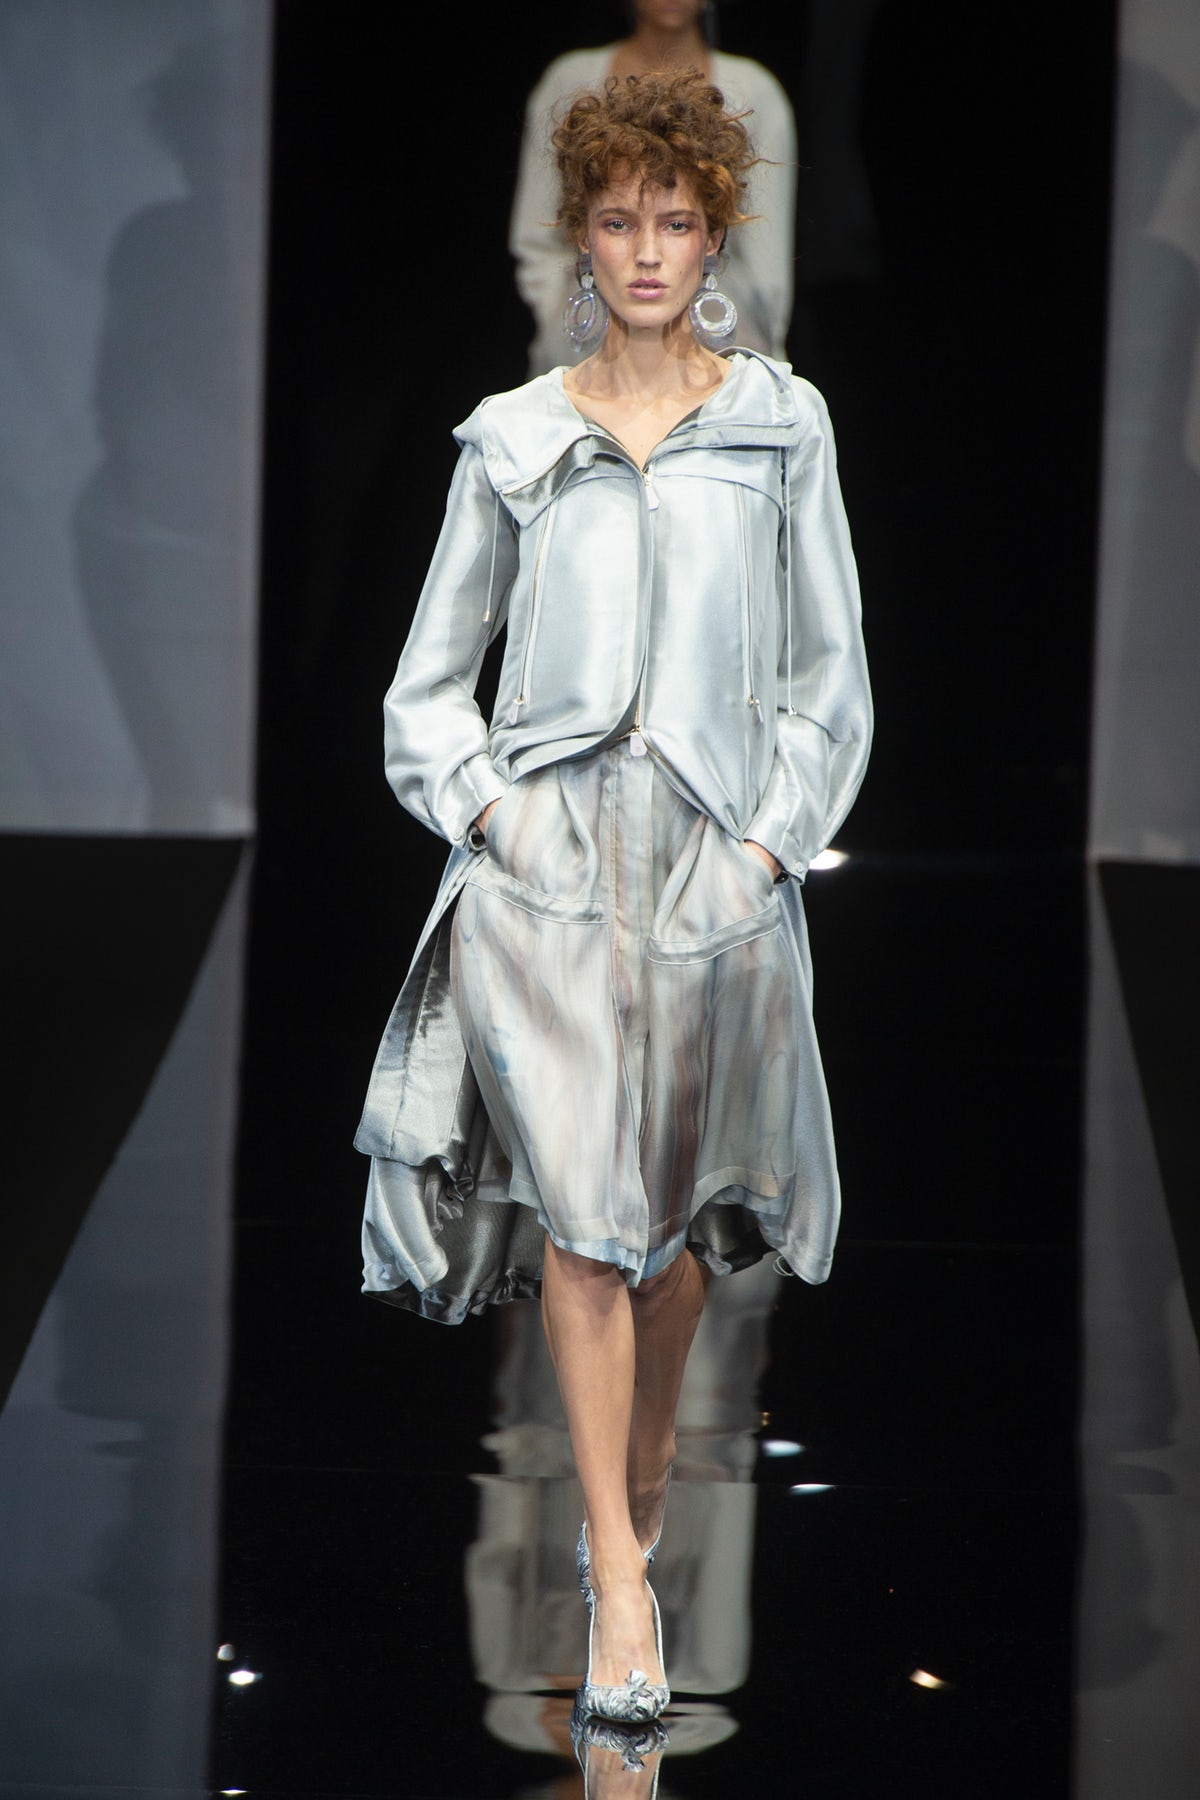 The Colour of Emotion at Giorgio Armani